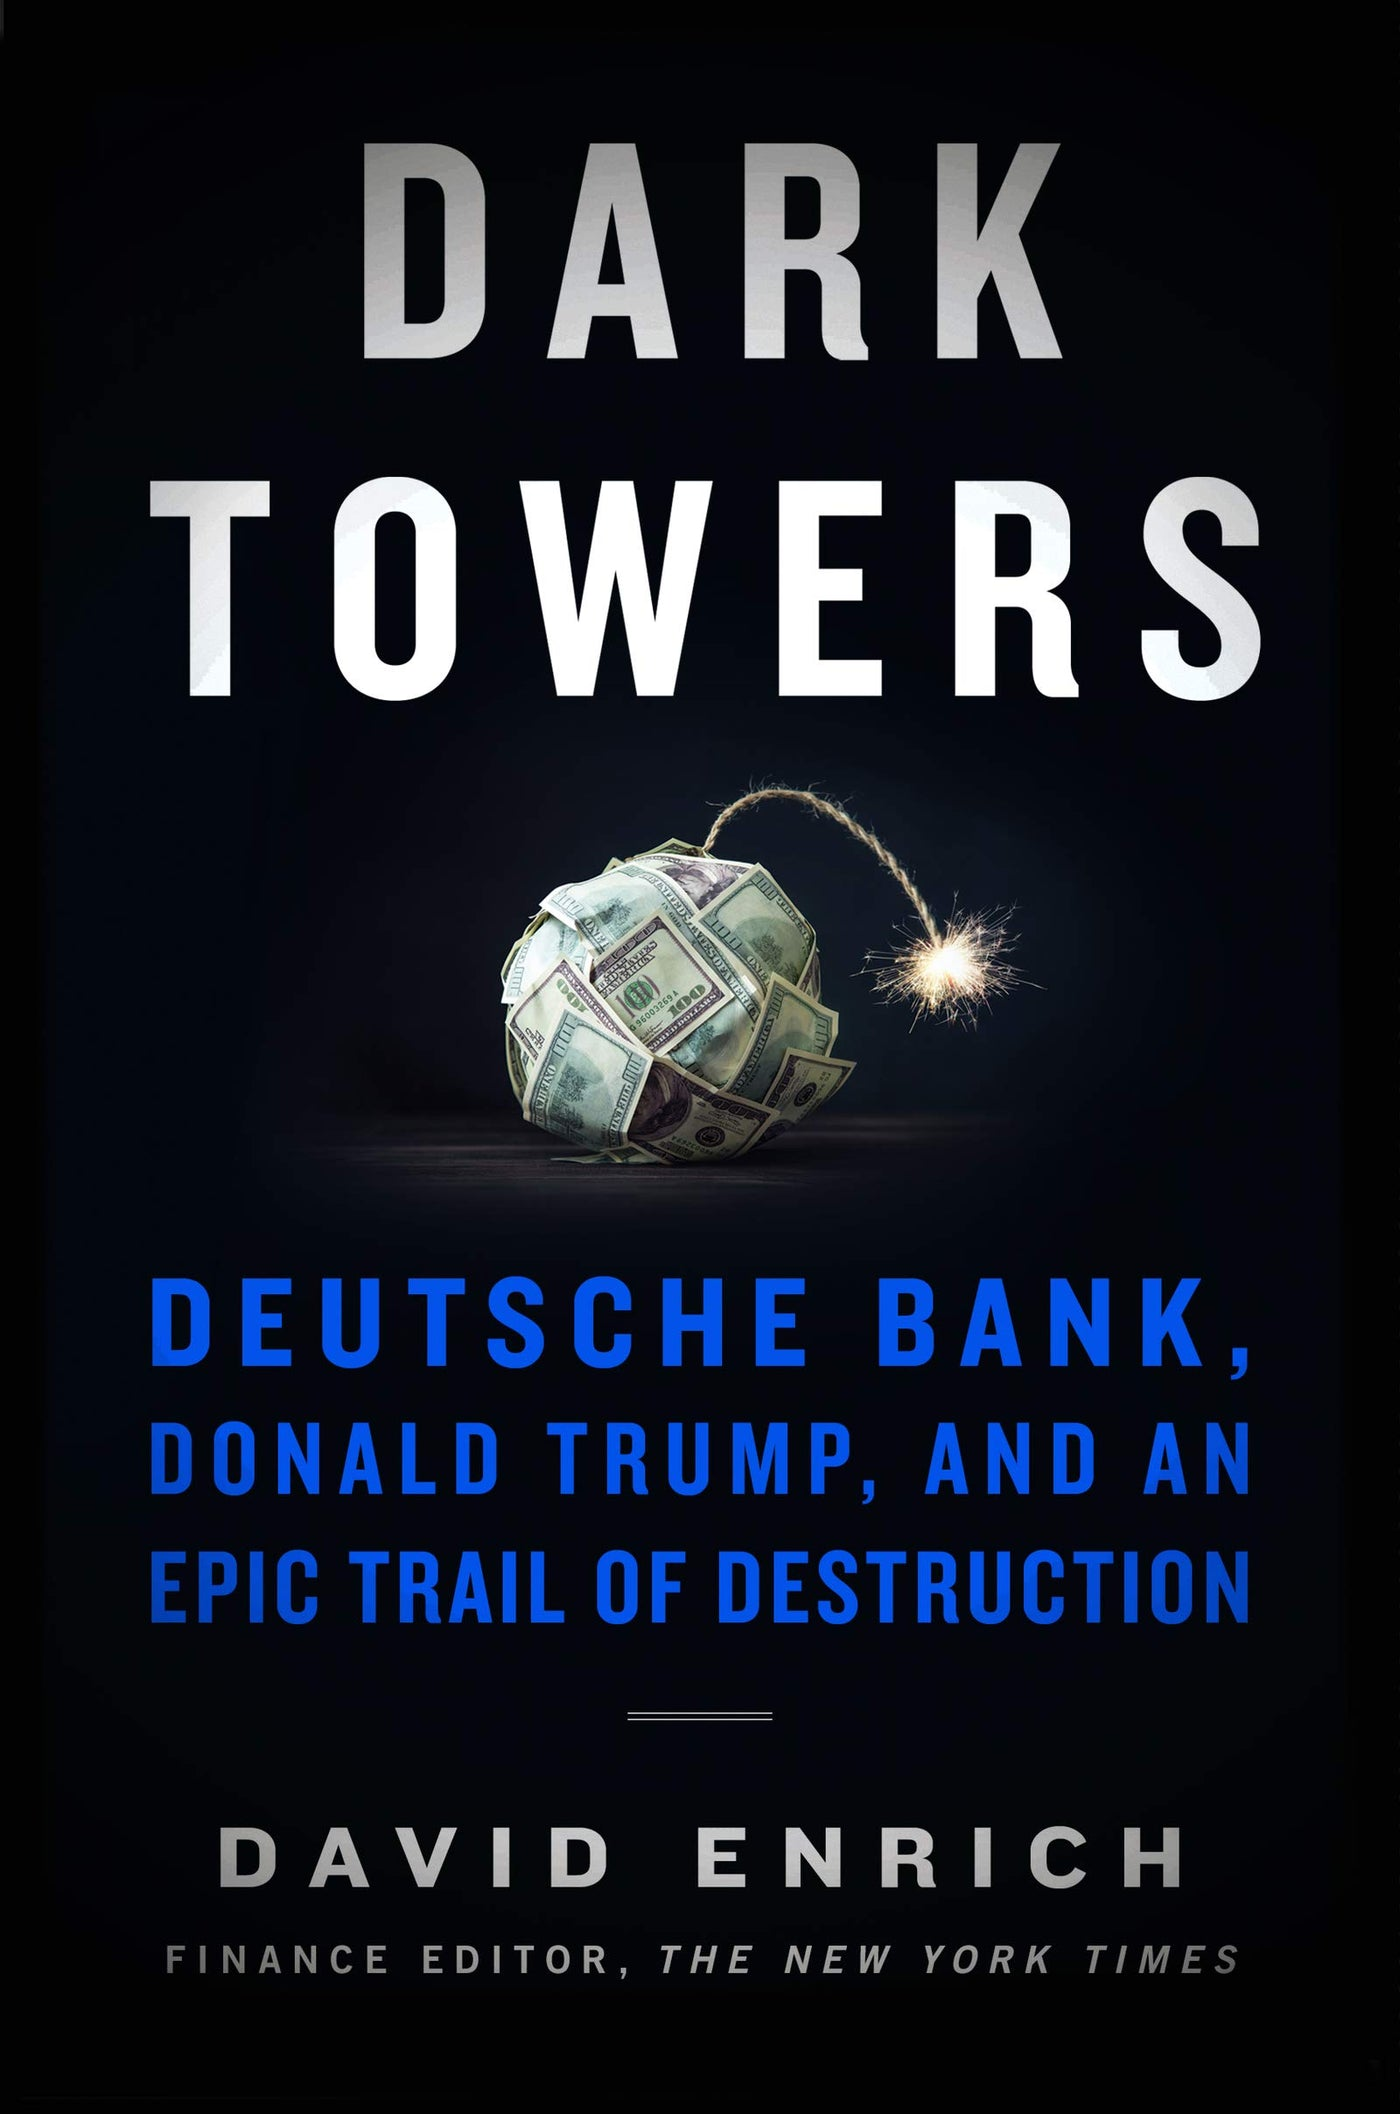 Dark Towers: Deutsche Bank, Donald Trump, and an Epic Trail of Destruction by David Enrich